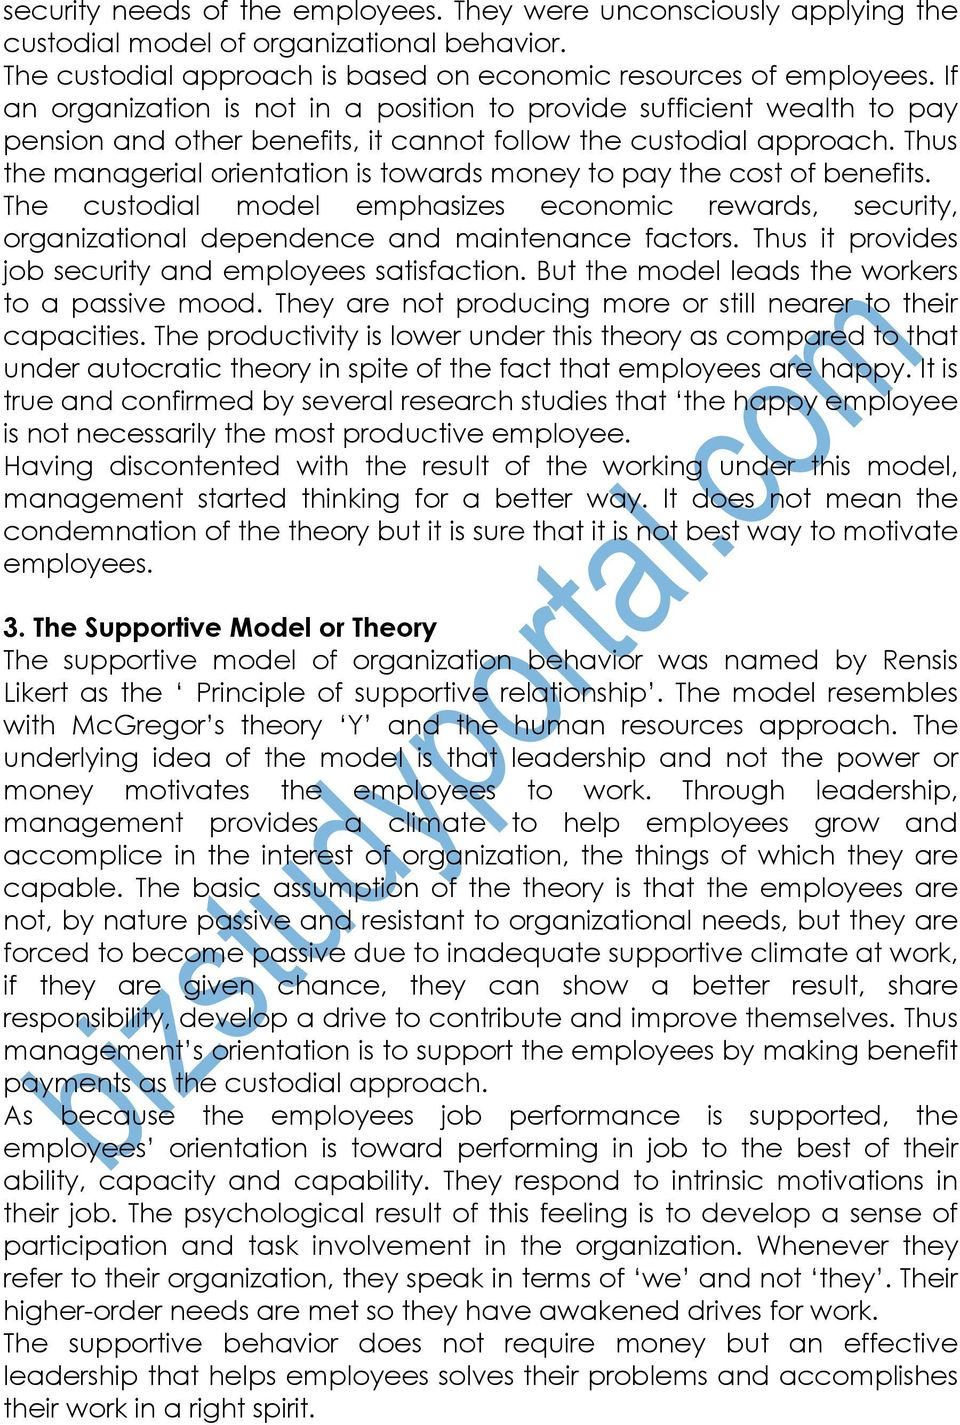 Thus the managerial orientation is towards money to pay the cost of benefits. The custodial model emphasizes economic rewards, security, organizational dependence and maintenance factors.